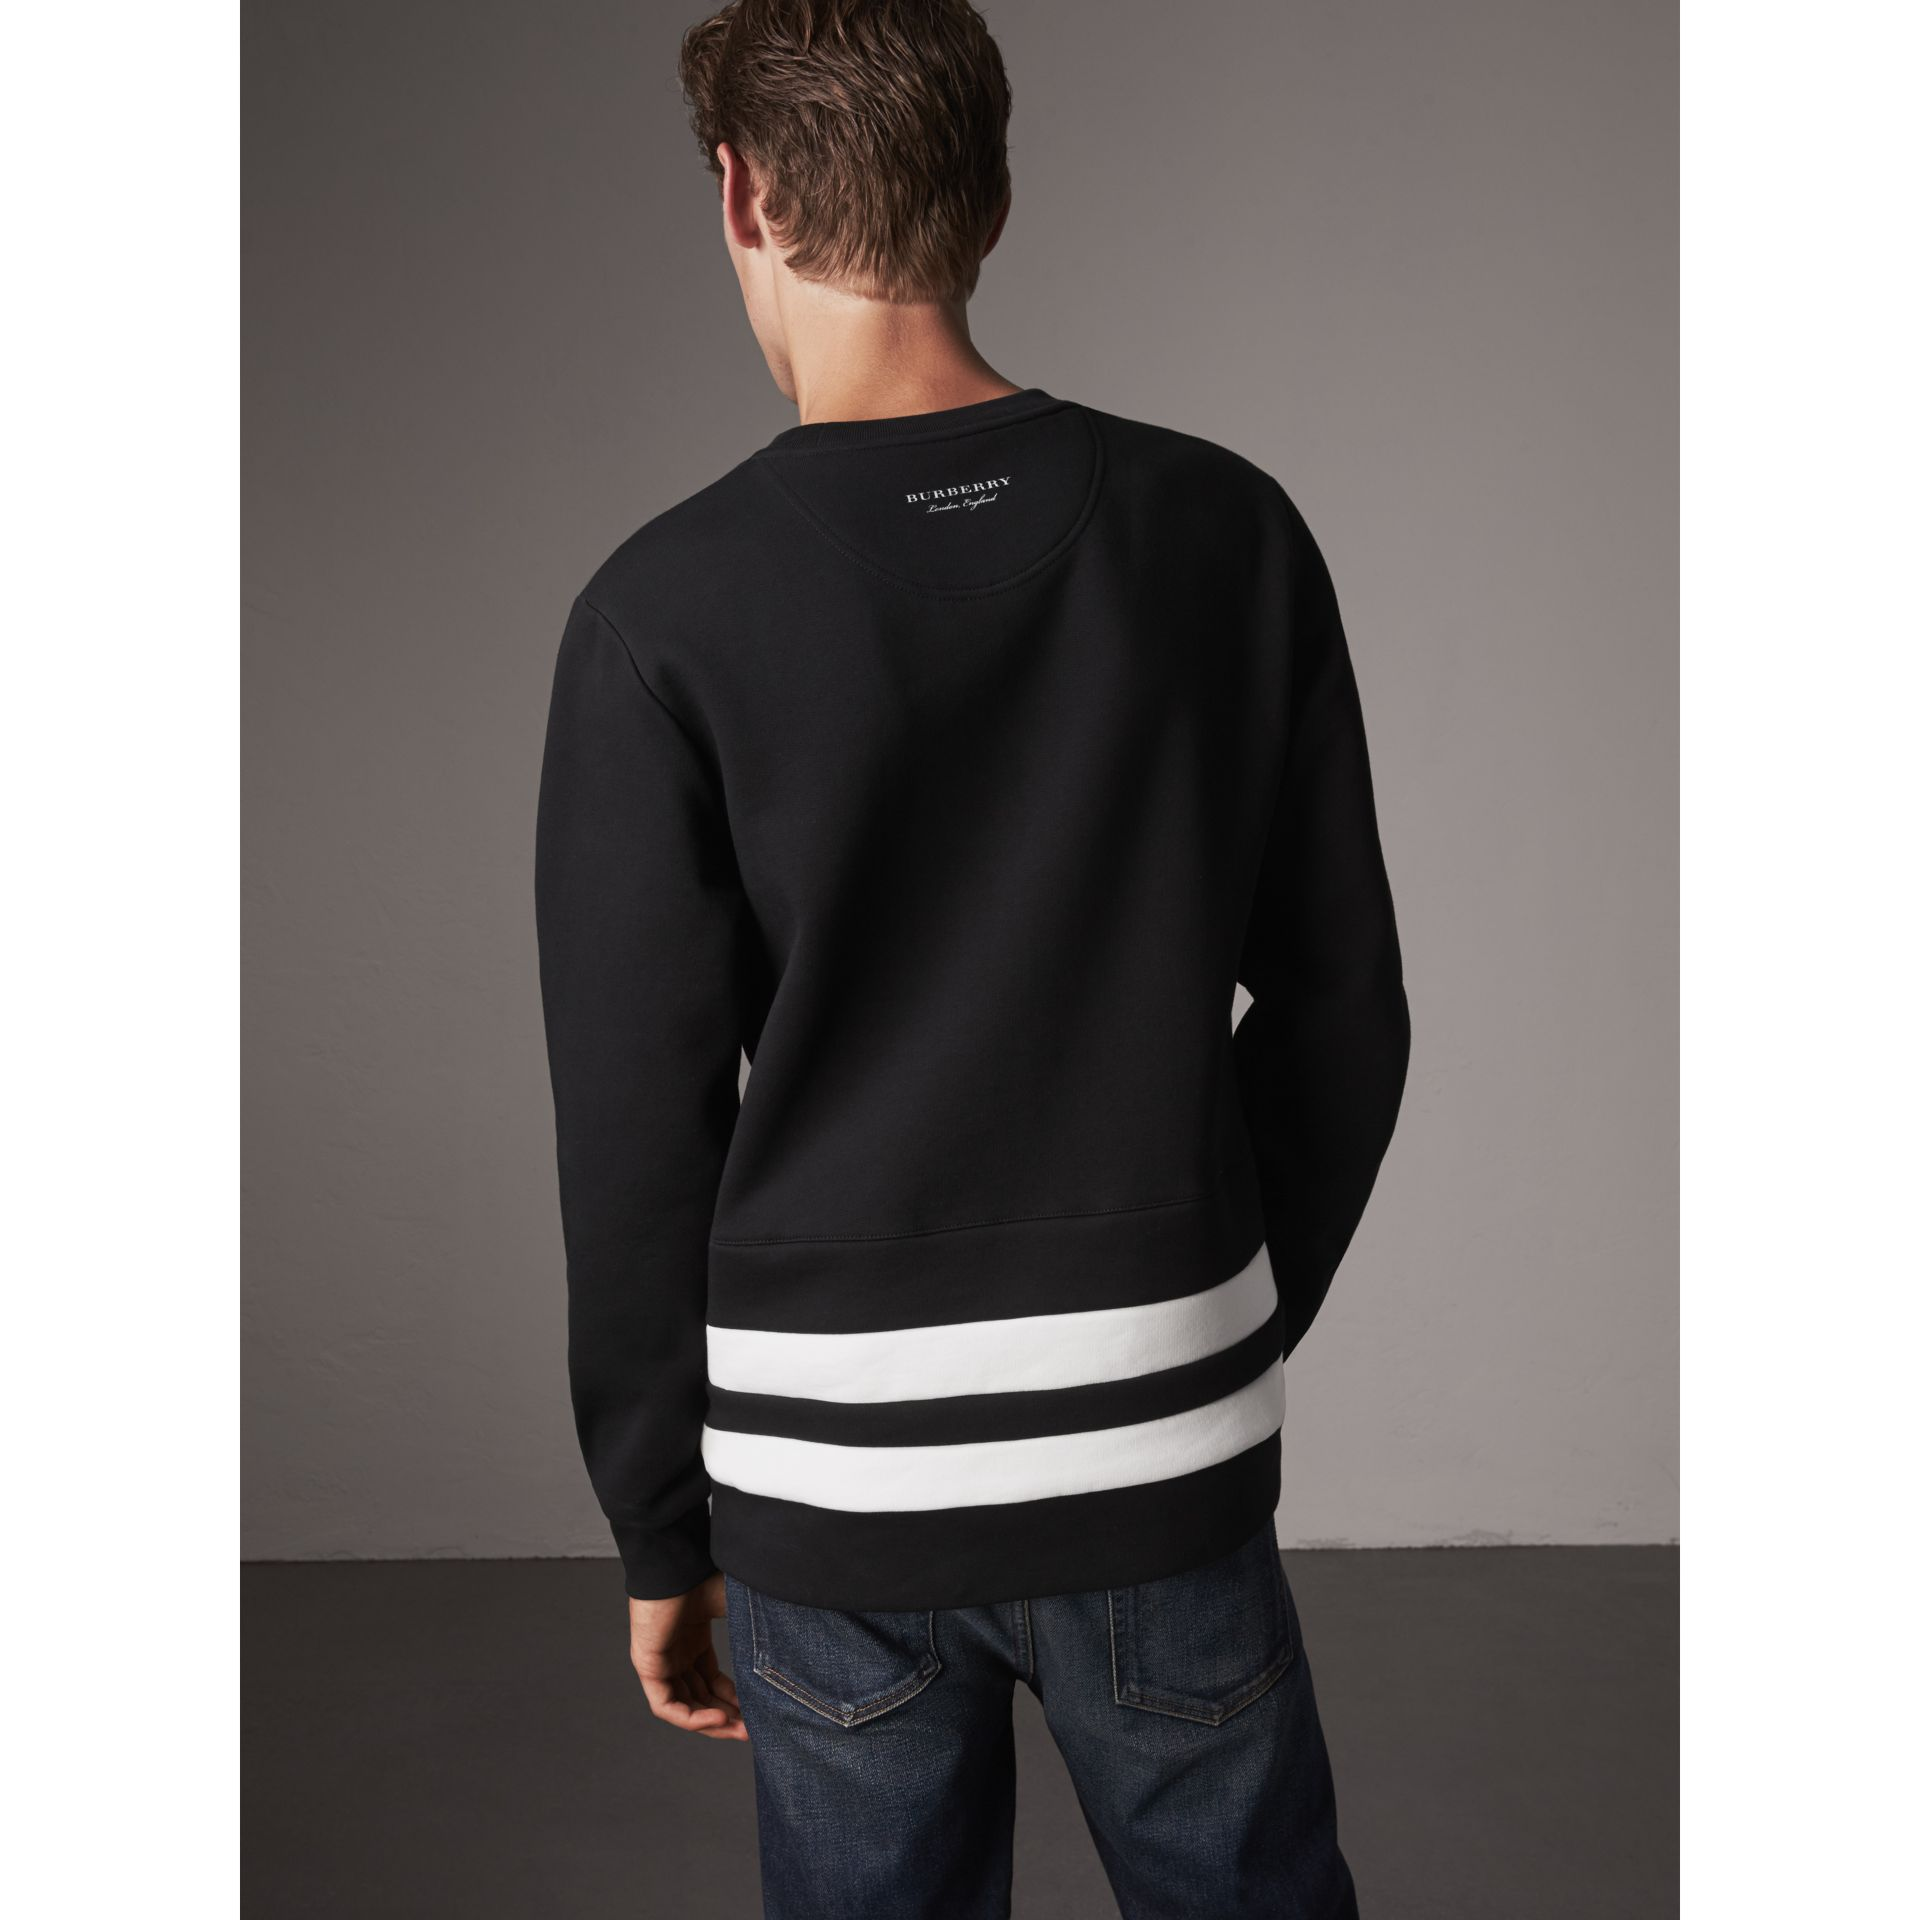 Sweat-shirt en coton mélangé avec base à rayures (Noir) - Homme | Burberry - photo de la galerie 3